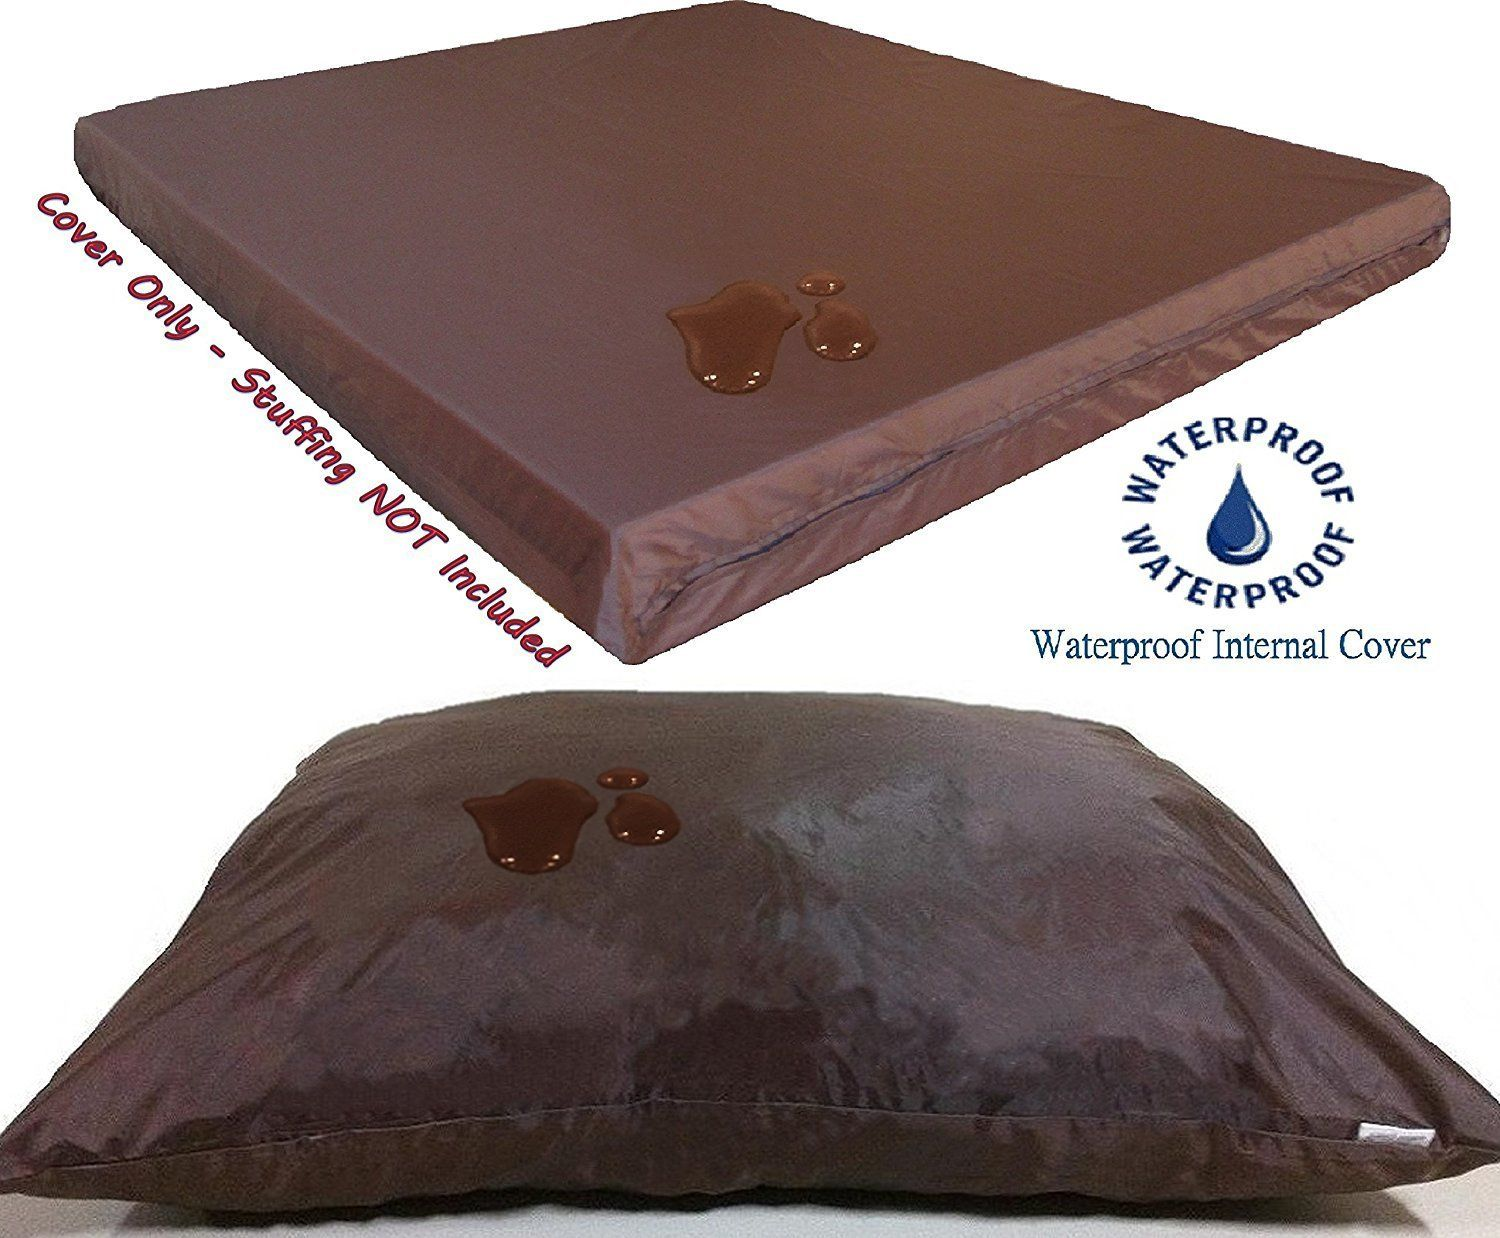 XL Orthopedic Waterproof Durable Dog Bed for